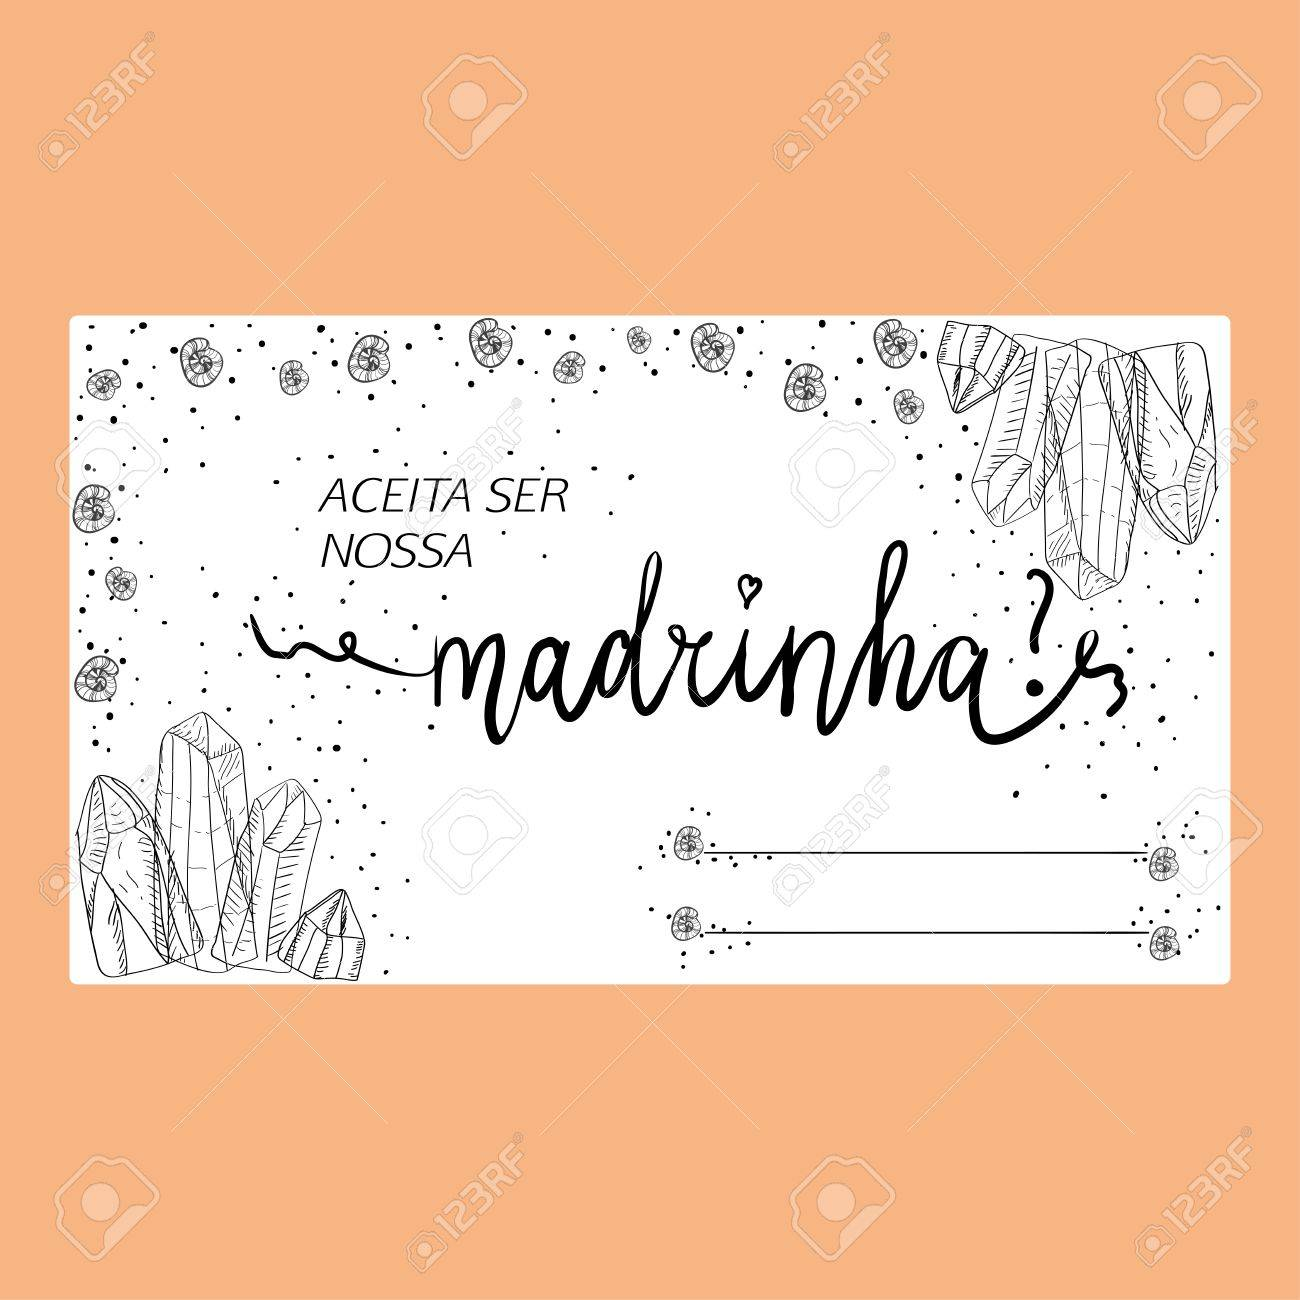 Template Of Wedding Invitation With The Text In Portuguese Language ...